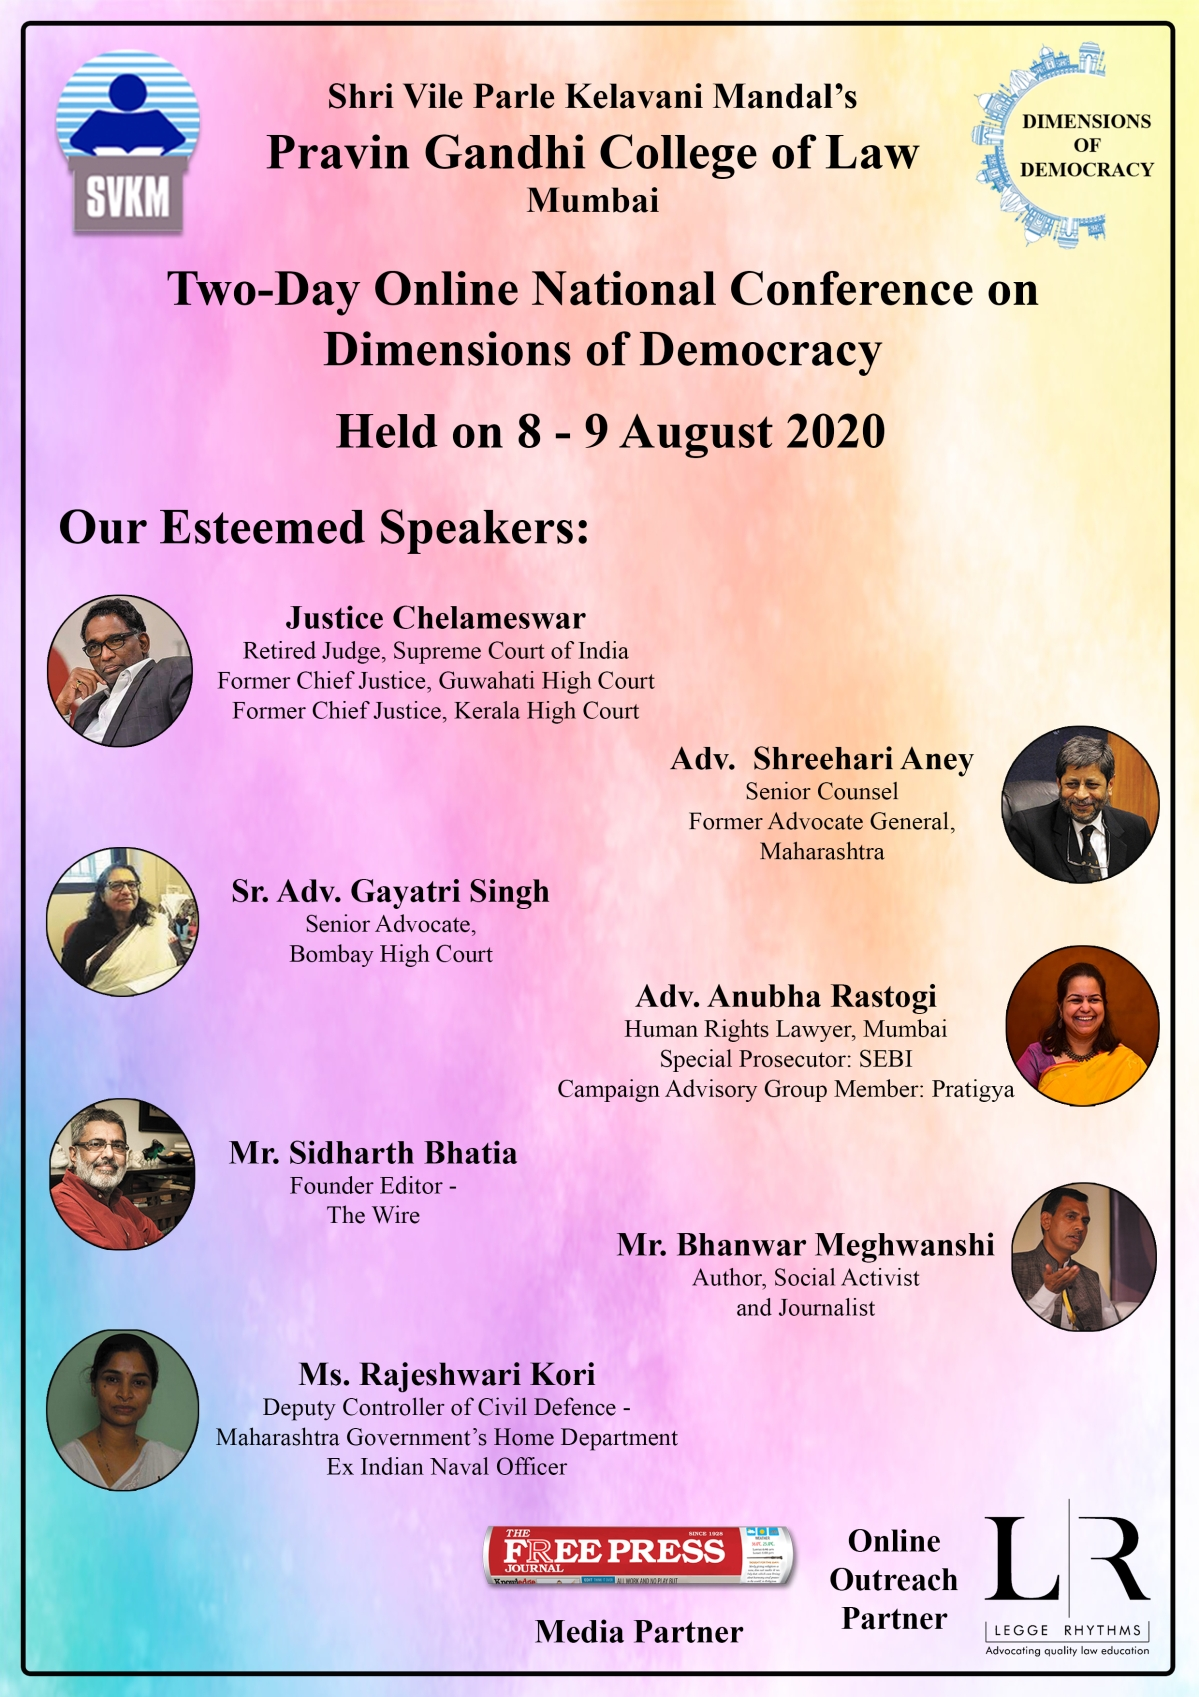 SVKM organises a 2-day online national conference on dimensions of democracy